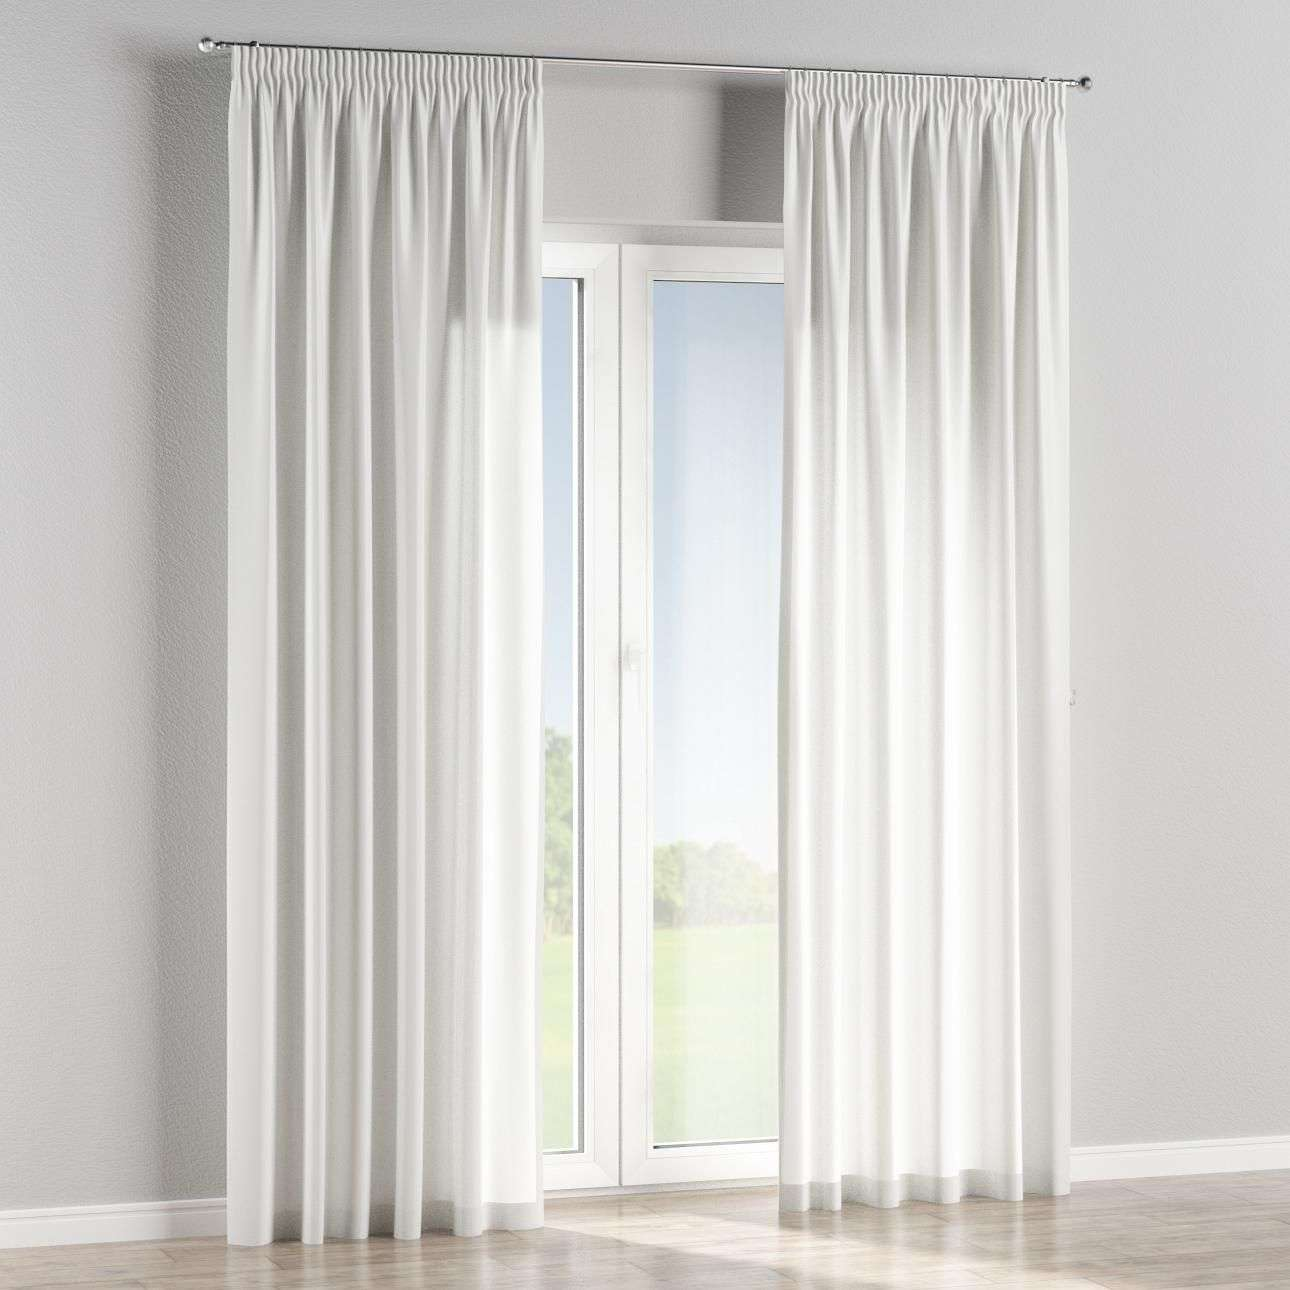 Pencil pleat lined curtains in collection Rustica, fabric: 138-17